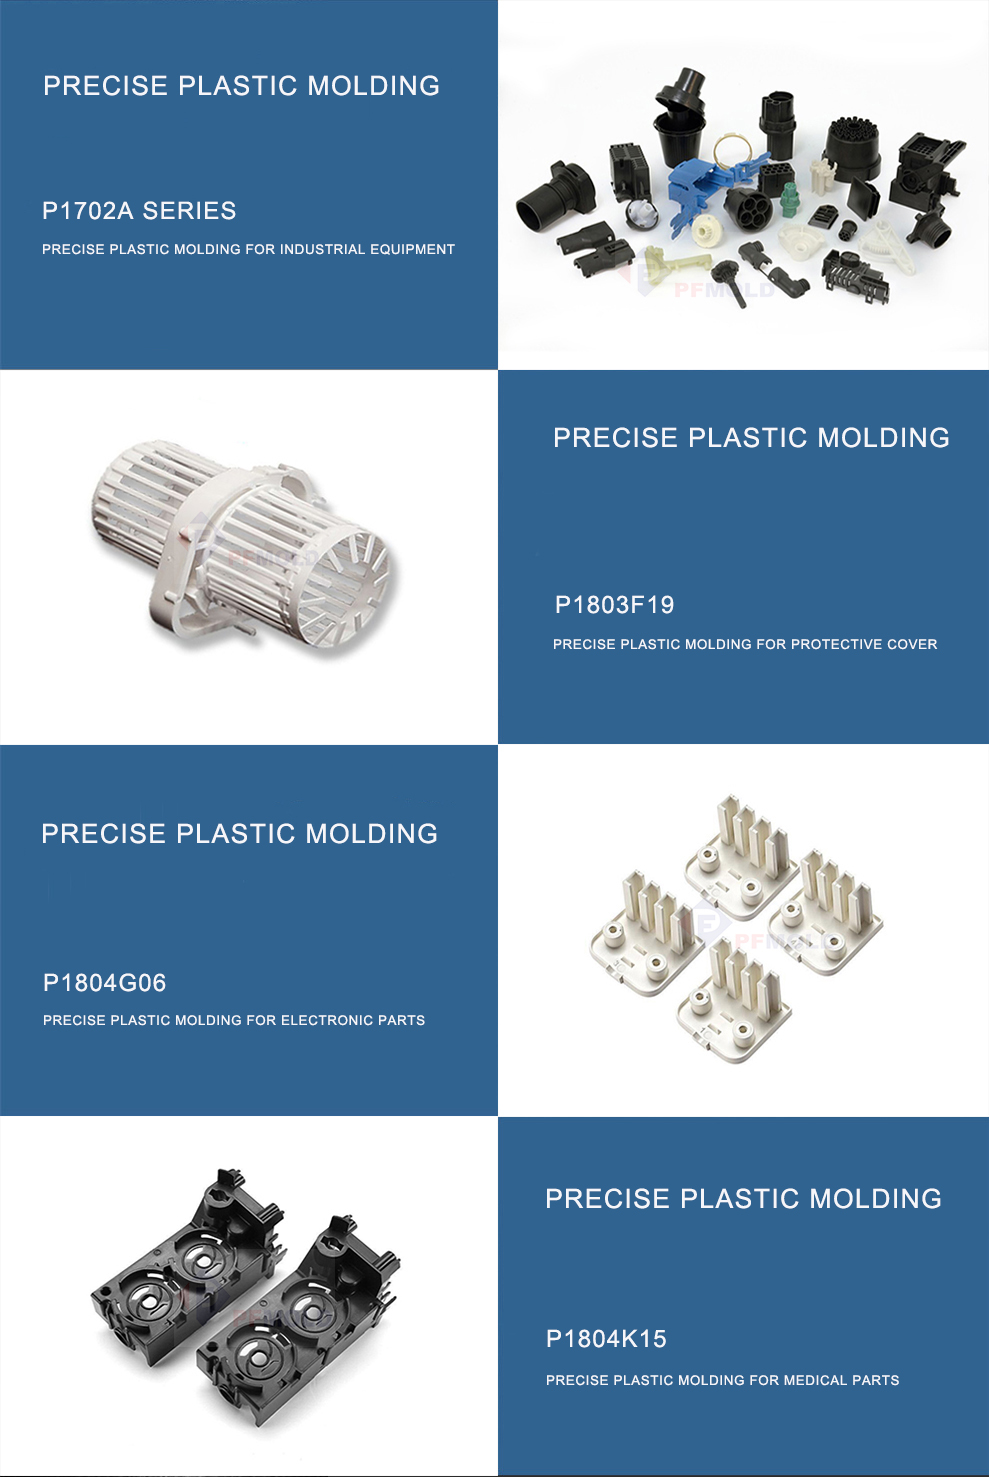 Hasco Medical Connector Molding